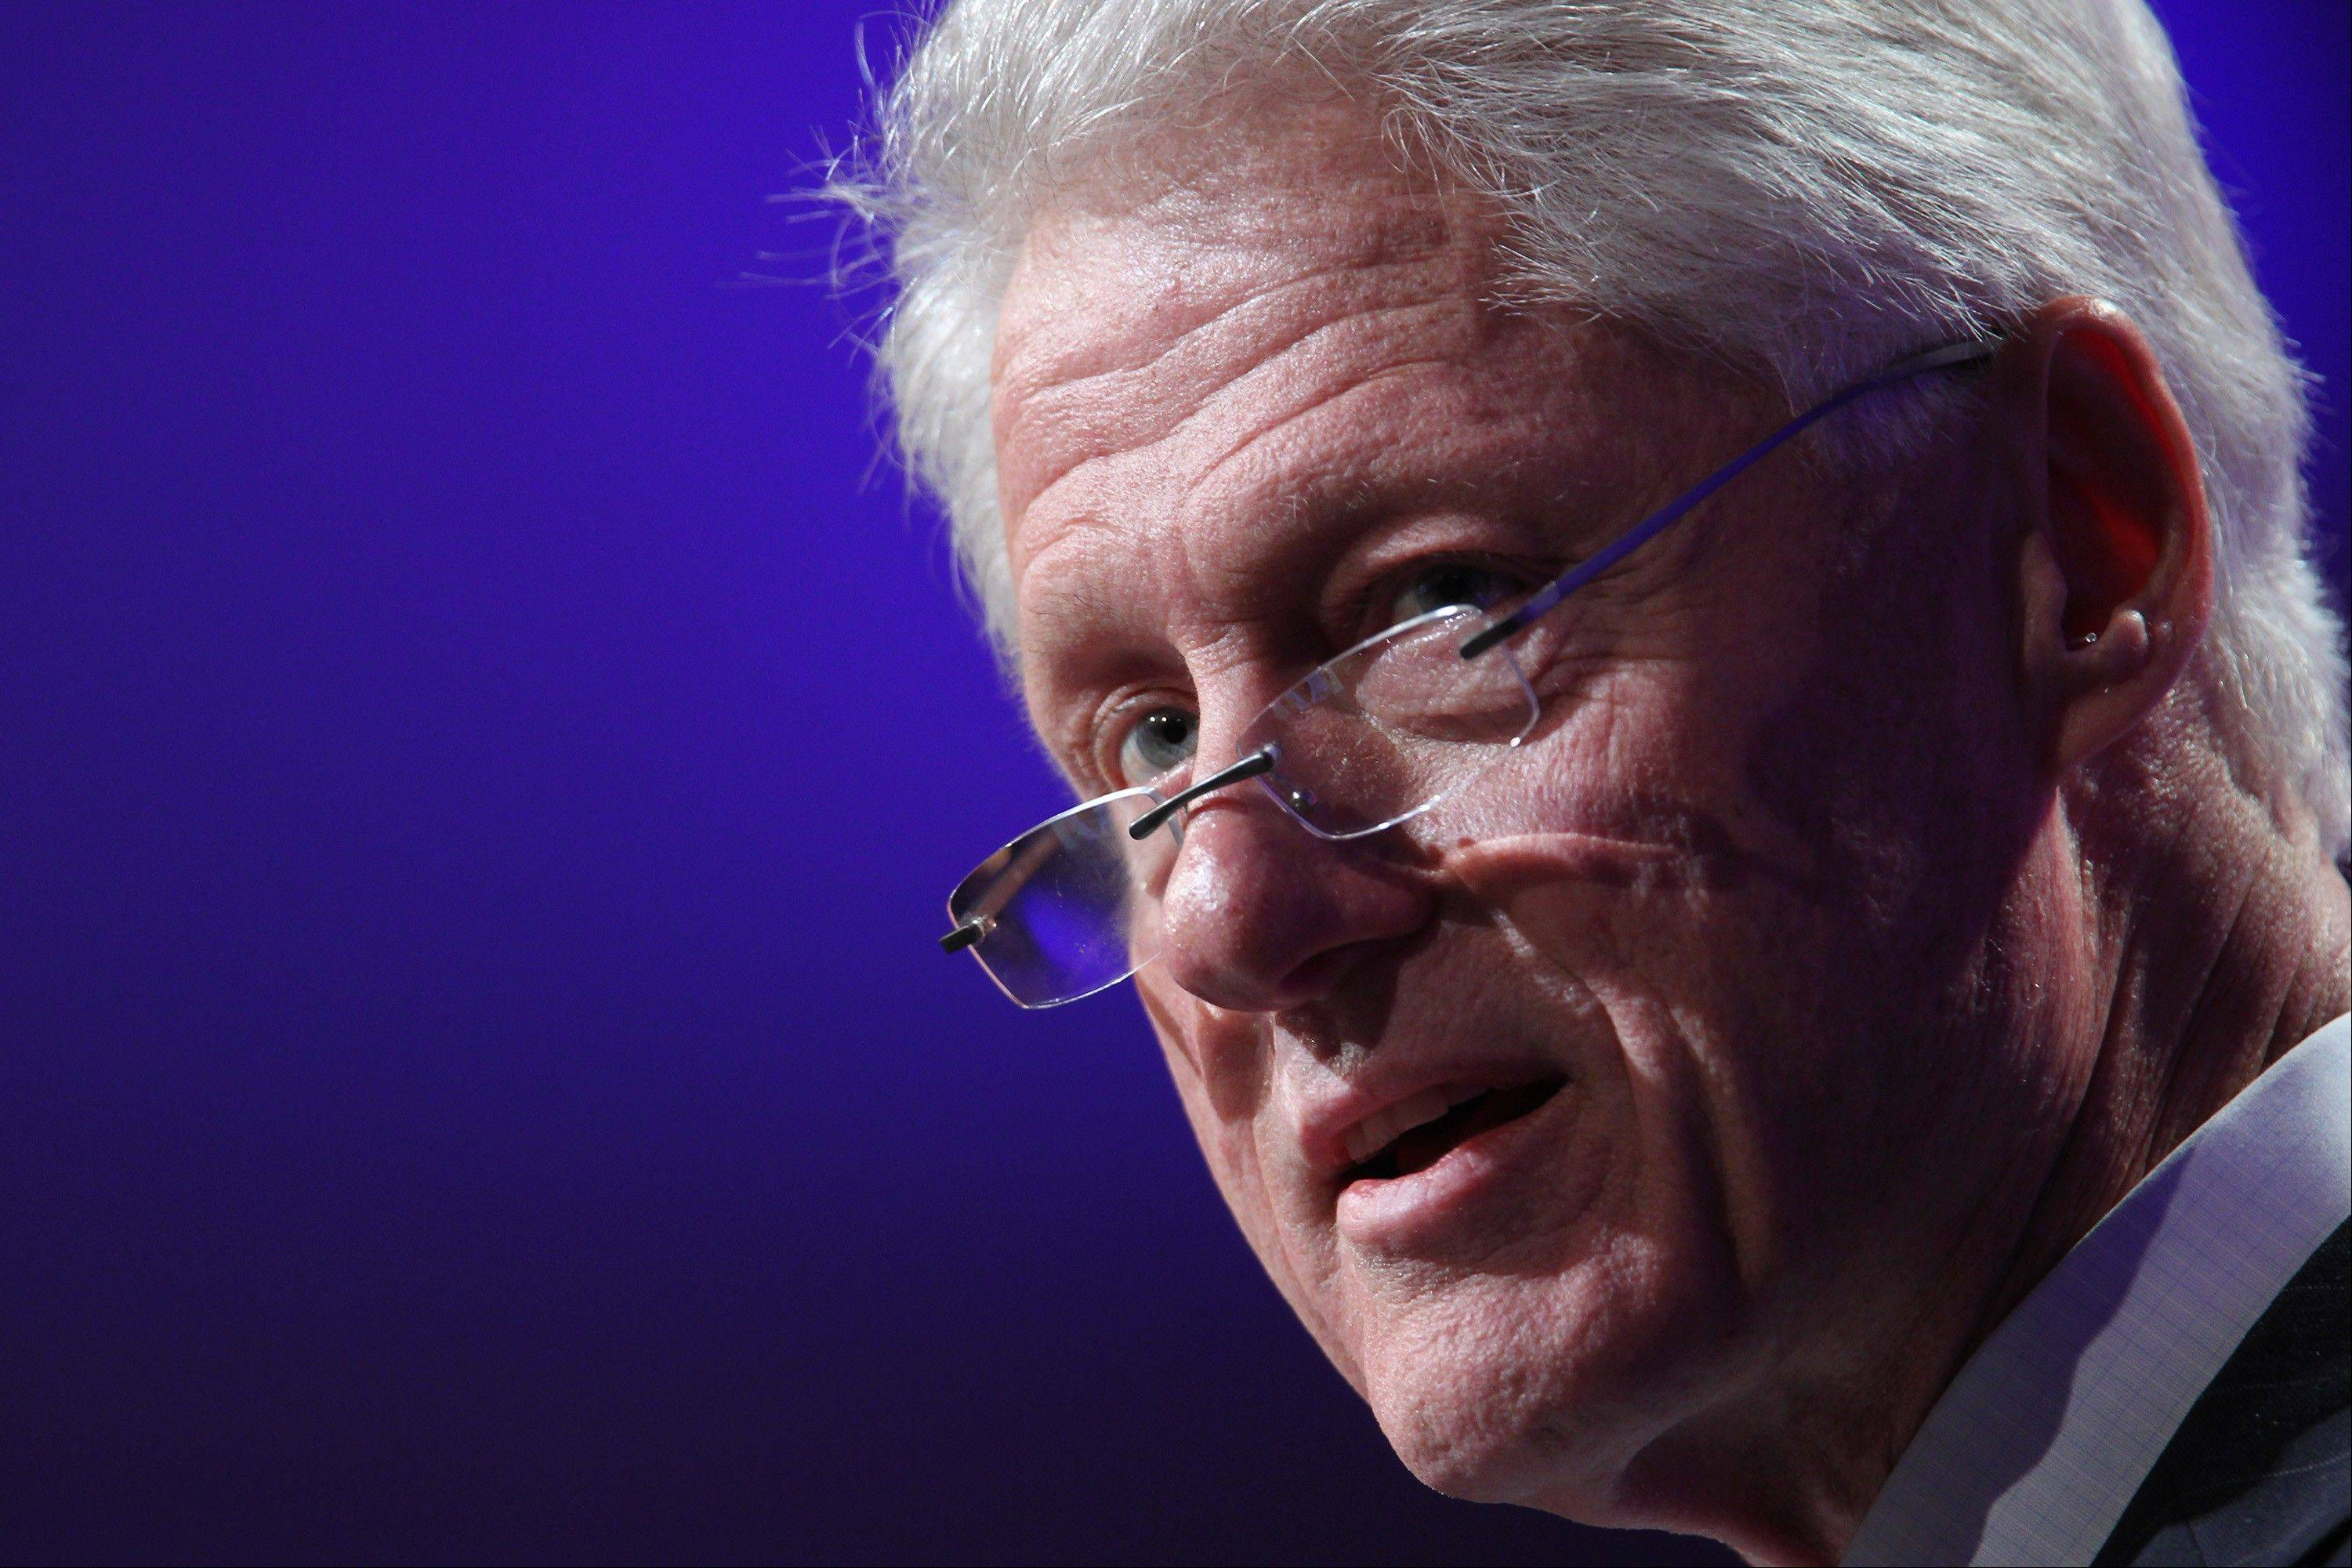 Former President Clinton urges religious tolerance